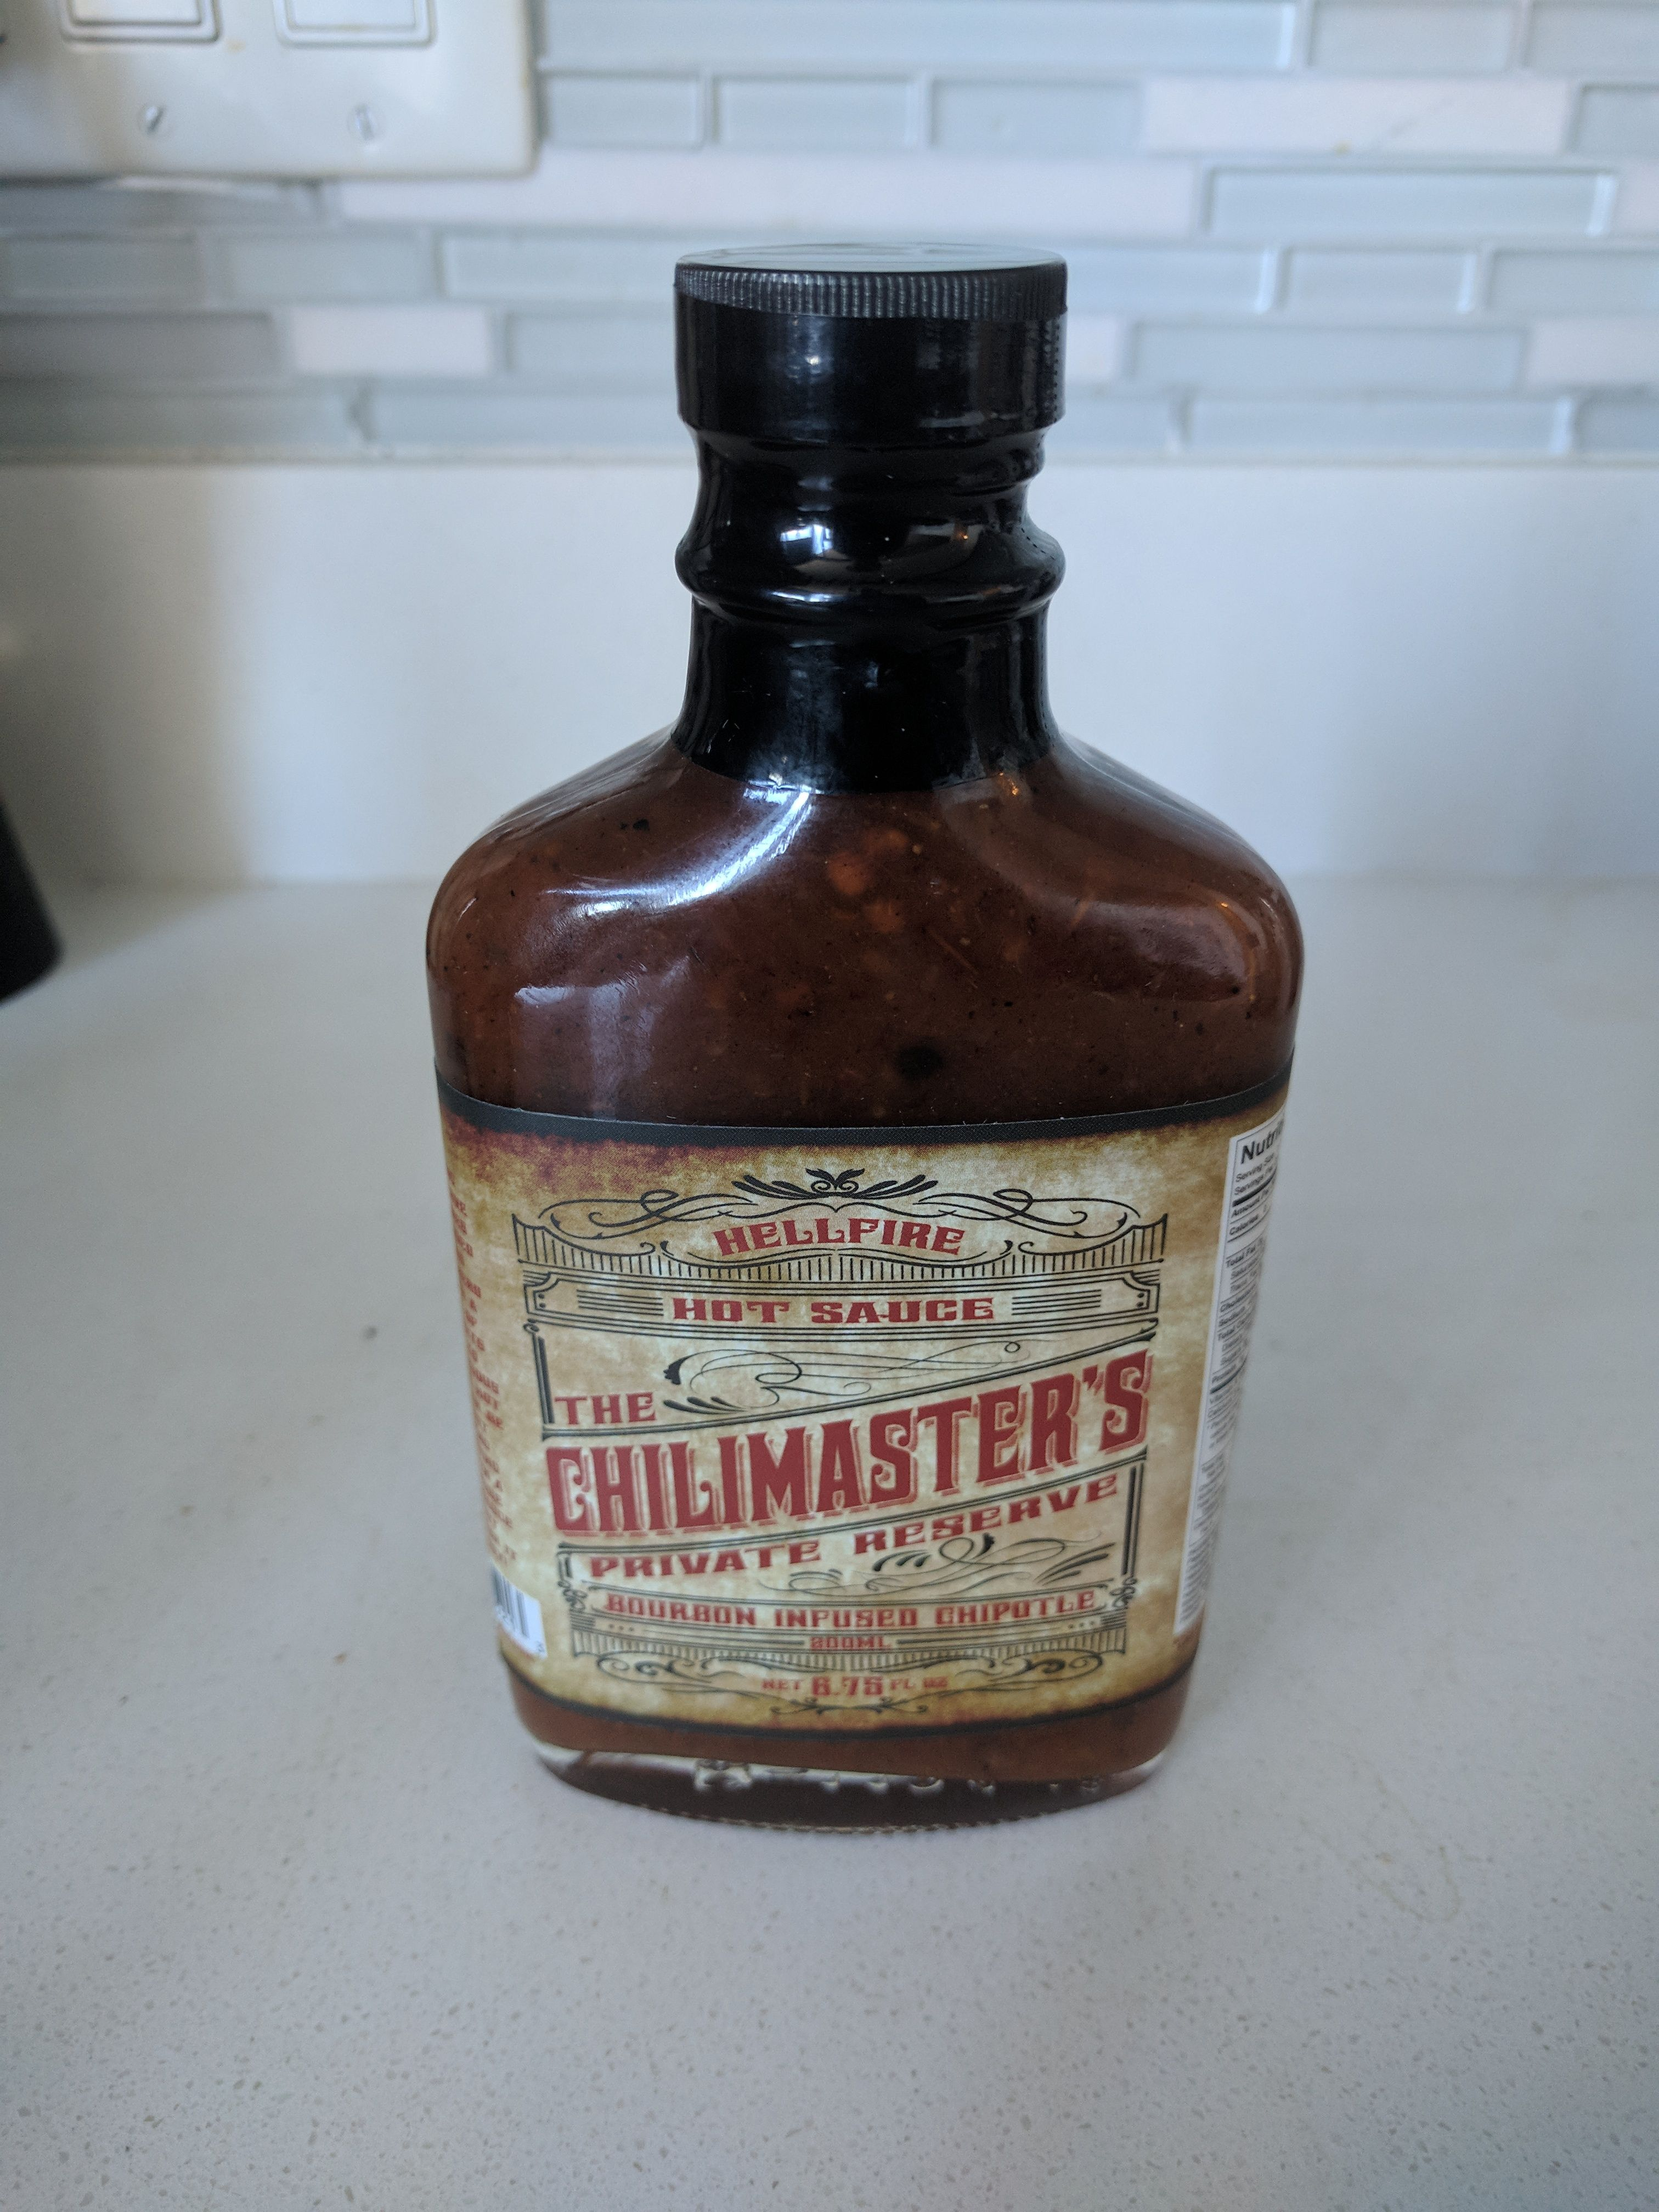 Hellfire Hot Sauce the Chilimaster's Private Reserve